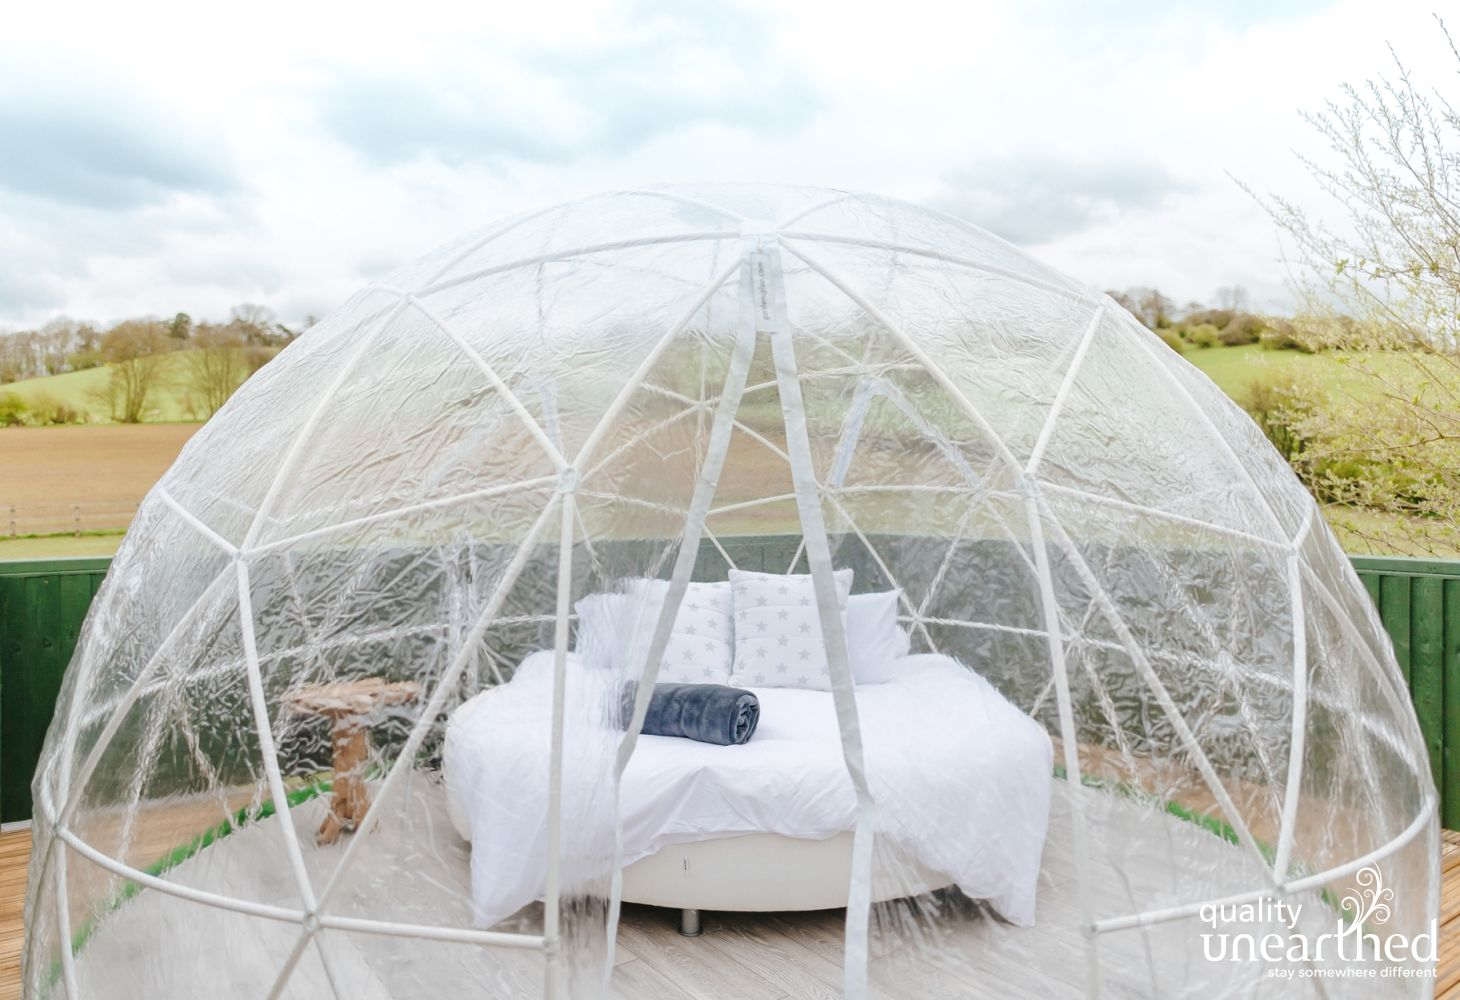 A see-through geodesic dome for stargazing under the clear night sky